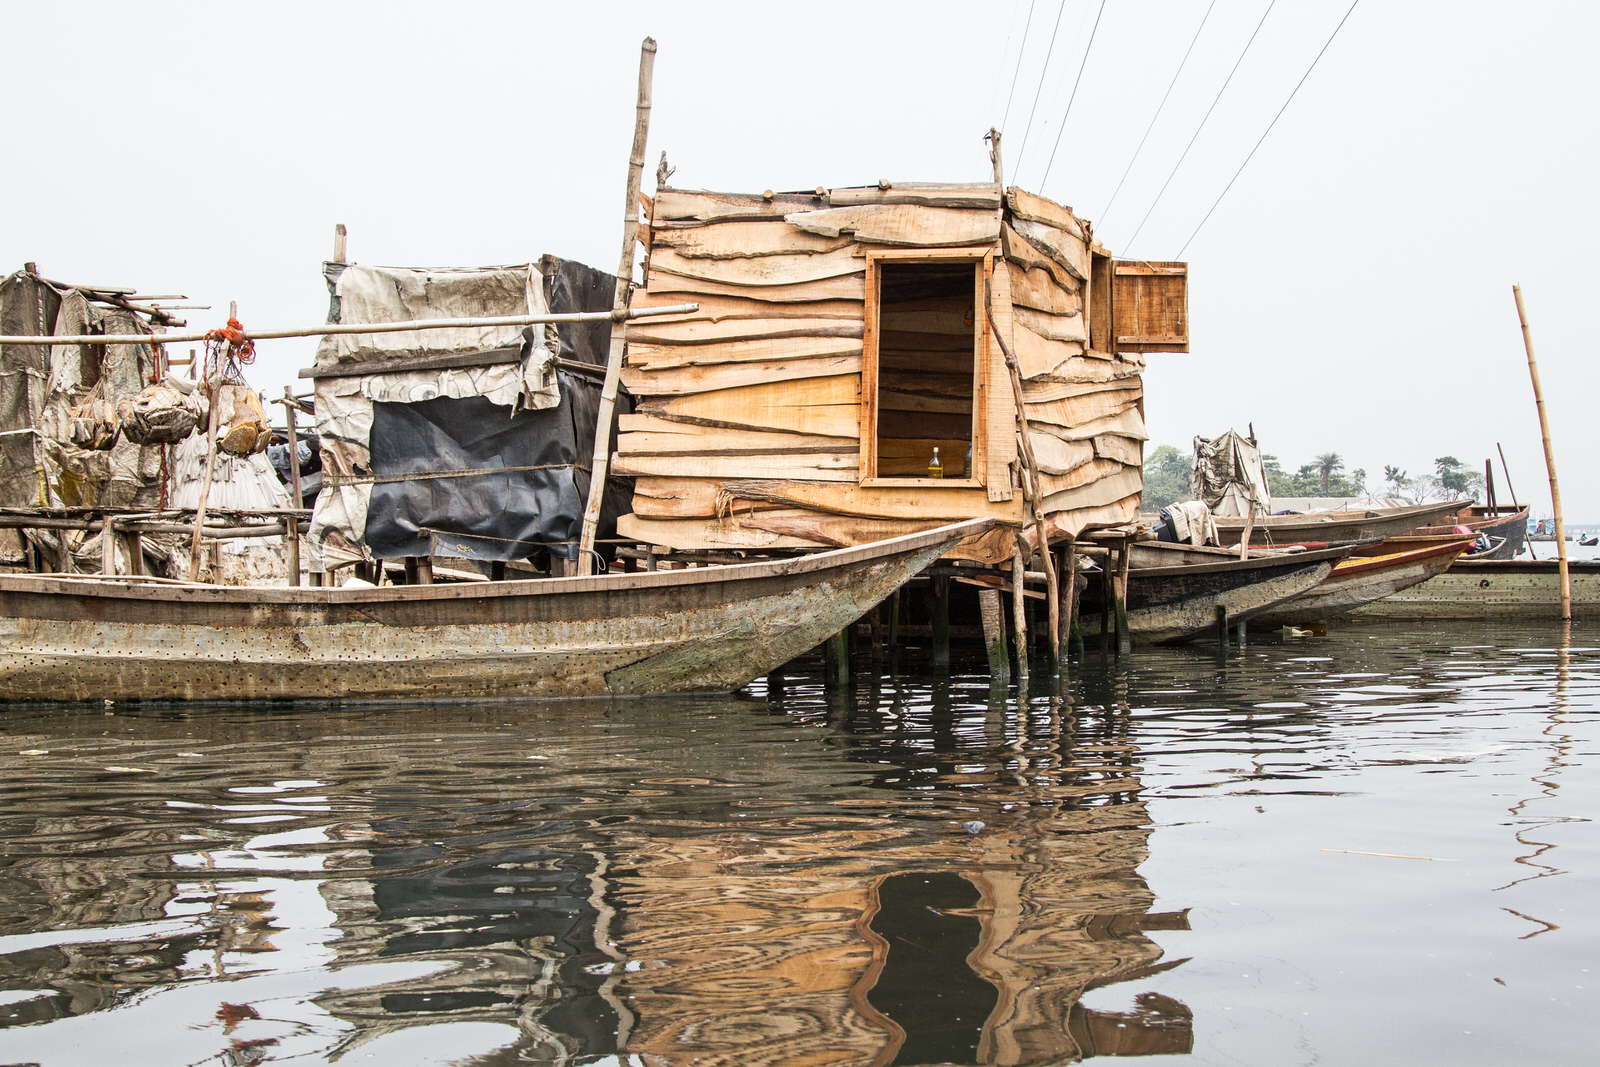 With limited space on land, the community has built onto the water. Following the mass evictions of another waterfront community, Otodo Gbame, the population of Sogunro swelled as many evictees were accommodated.